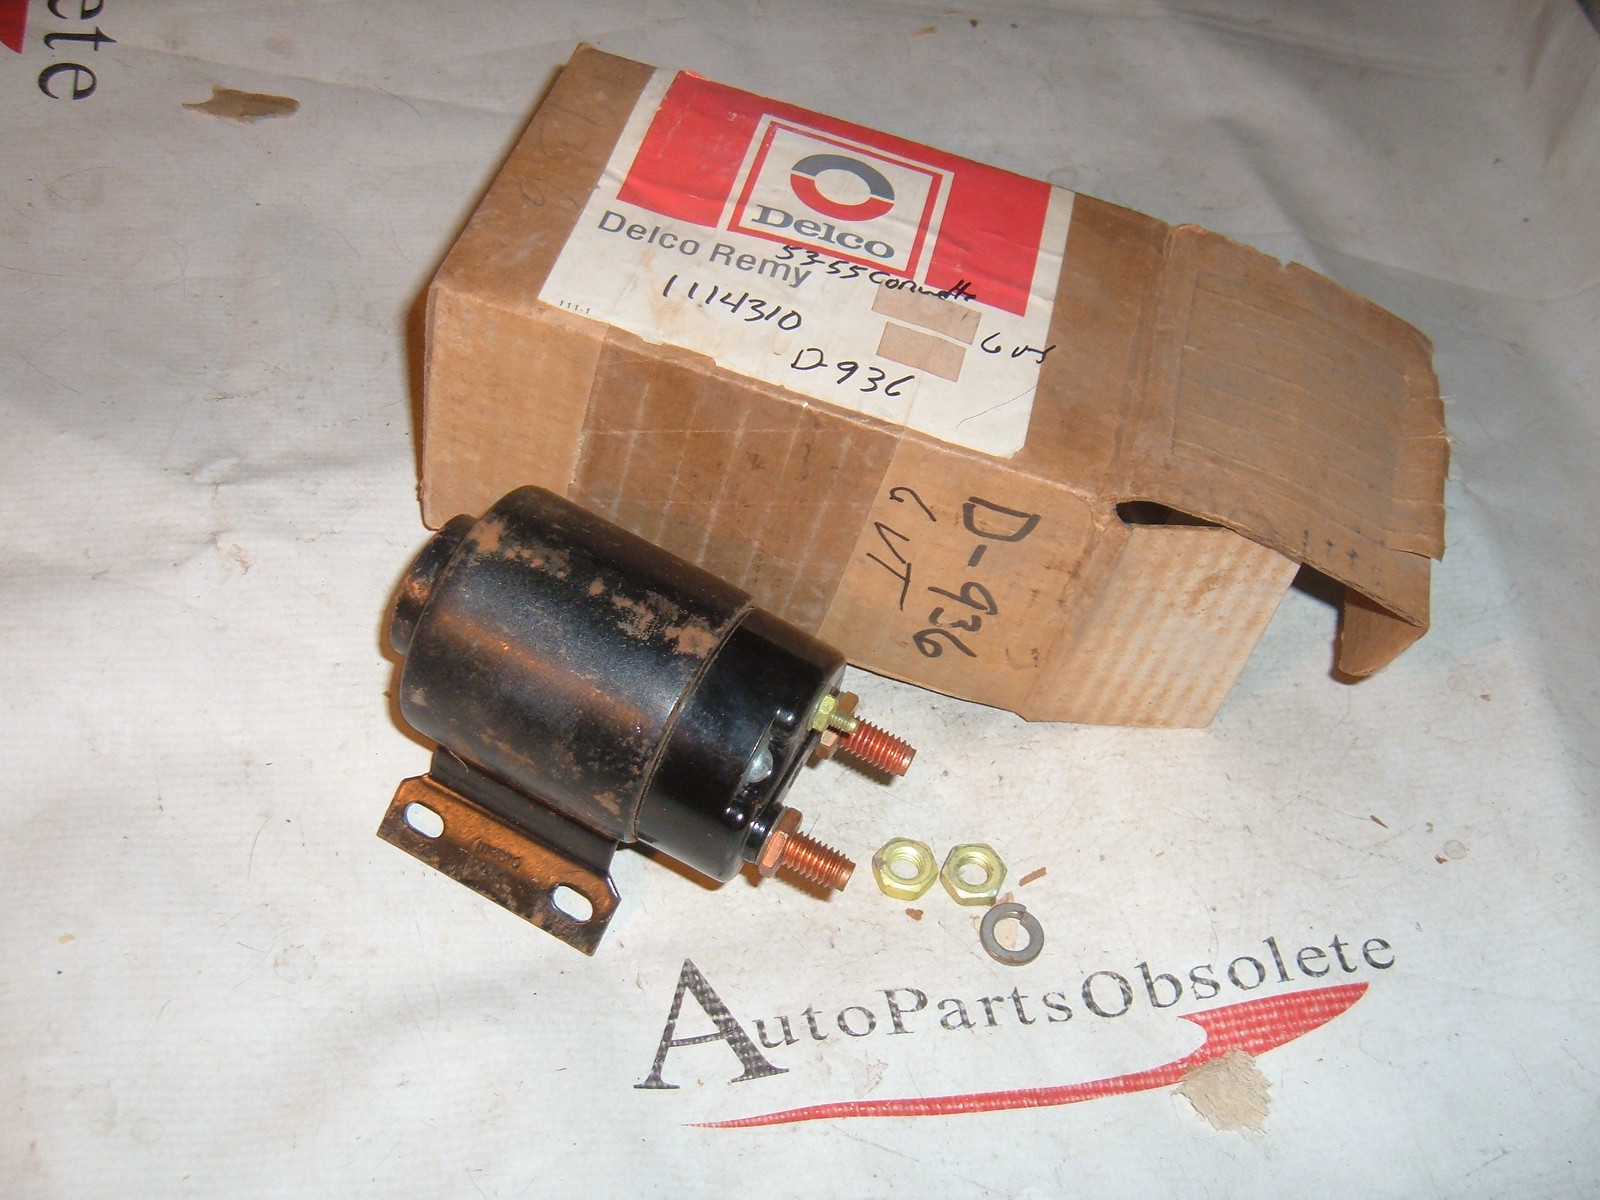 1952 53 54 55 cadillac buick oldsmobile chevrolet starter solenoid gm 1114310 nos gm (z 1114310)